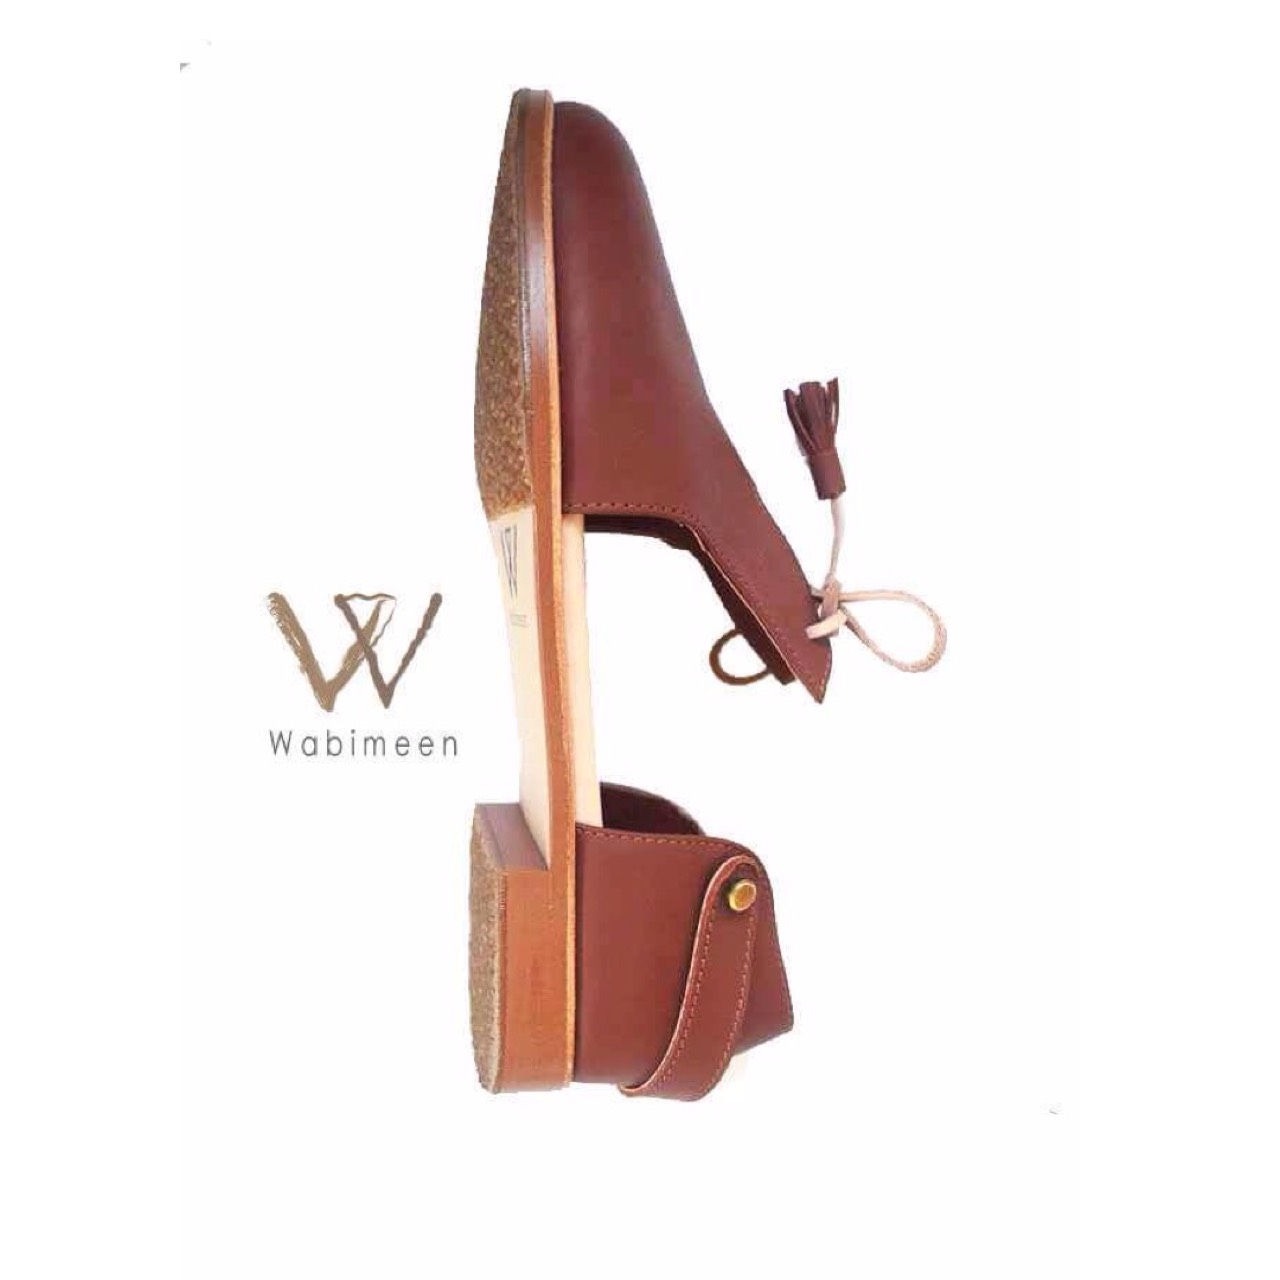 wabimeen,shoes,brand,handmade